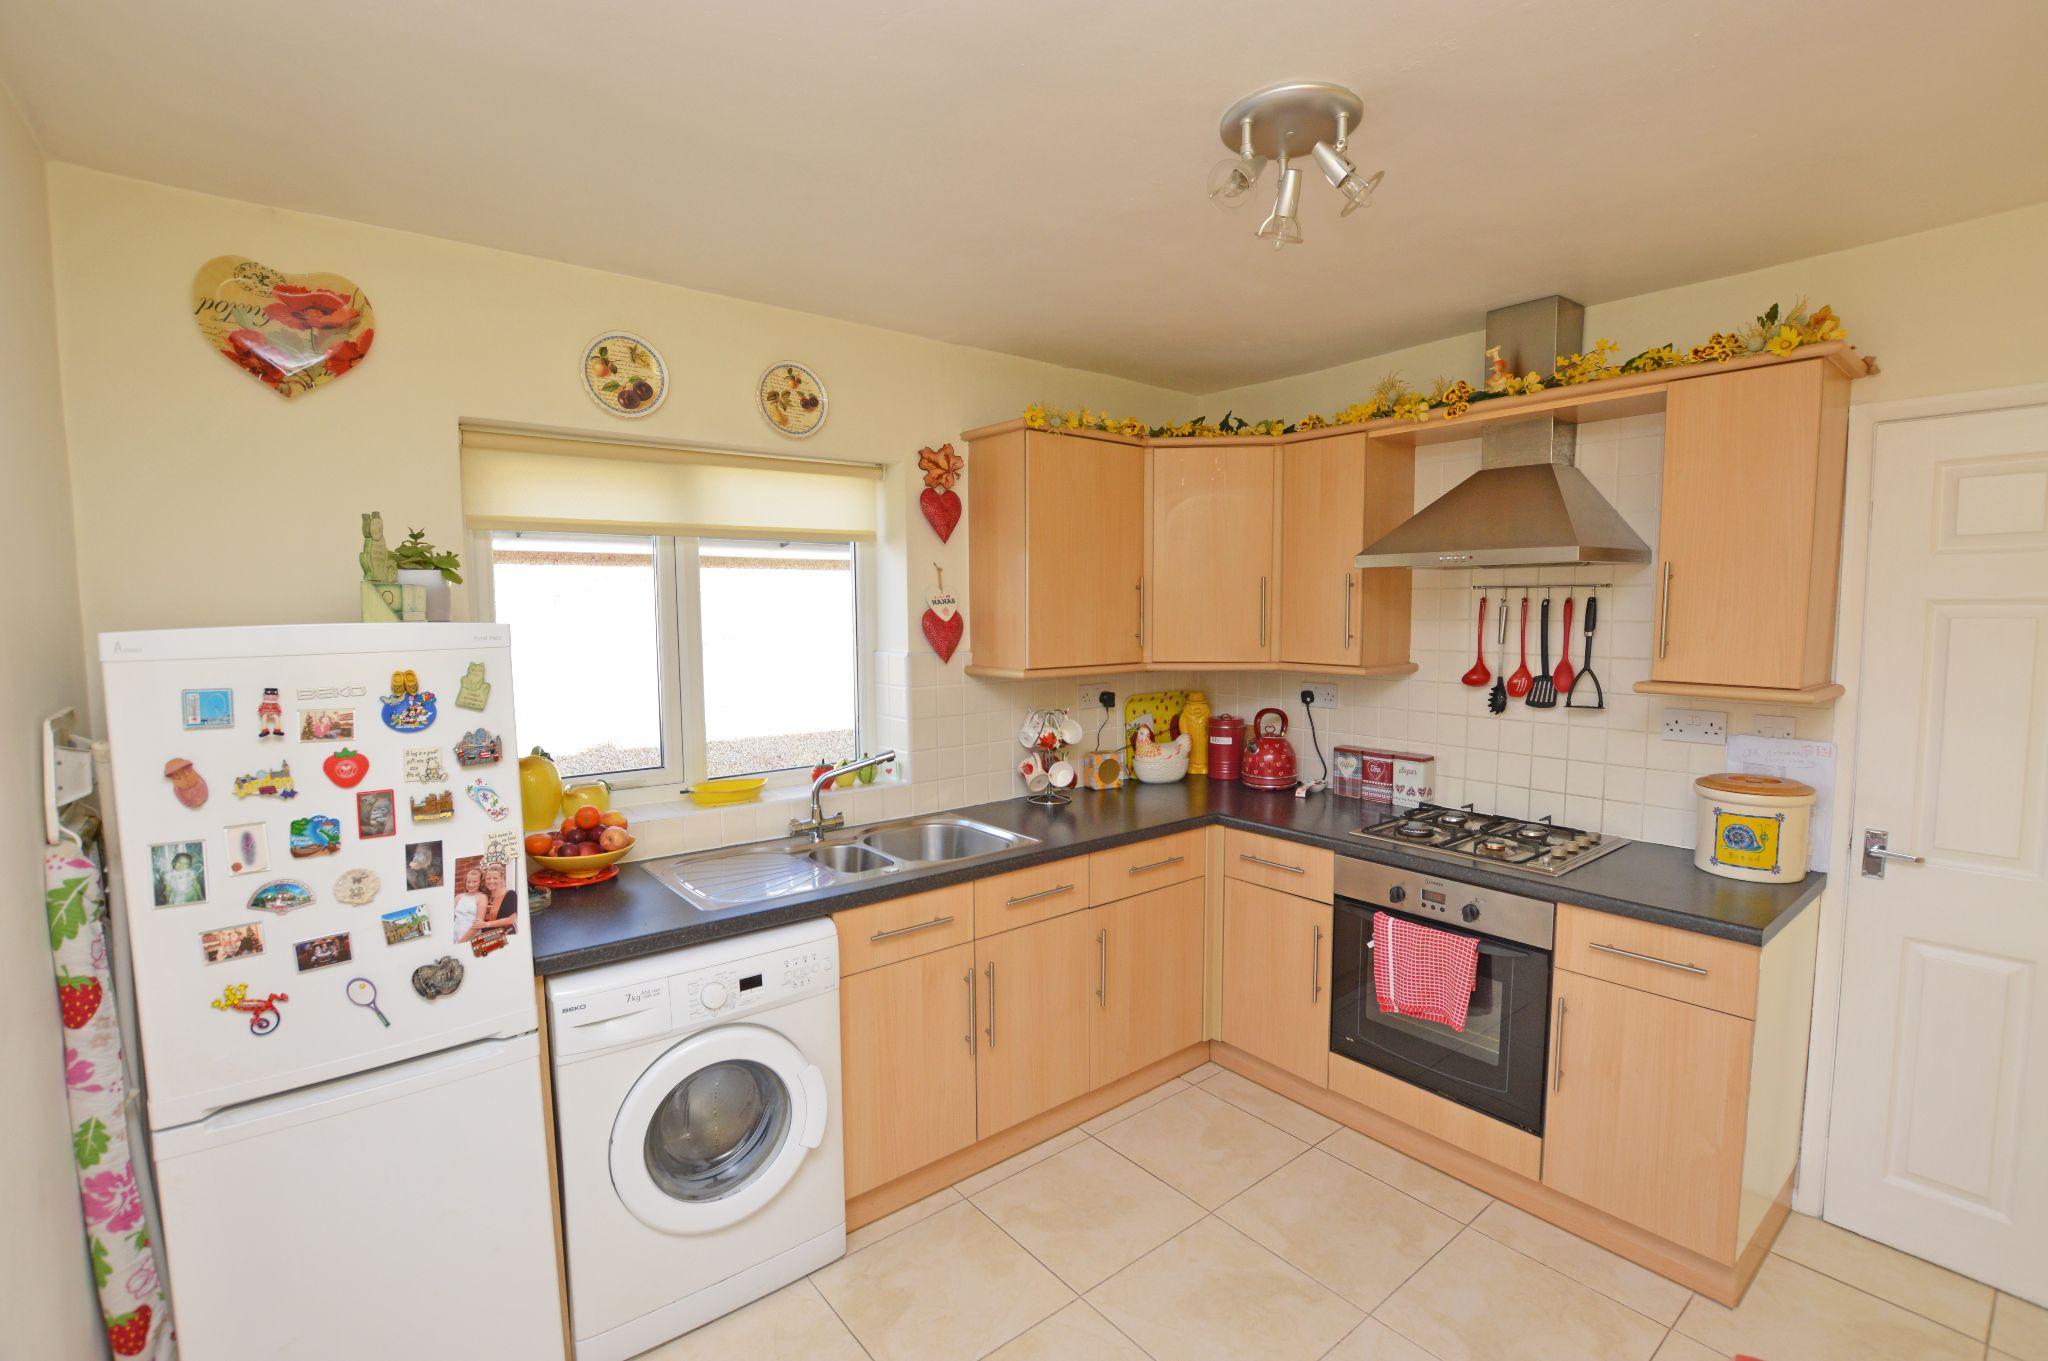 2 bedroom detached bungalow For Sale in Abergele - Kitchen View 2